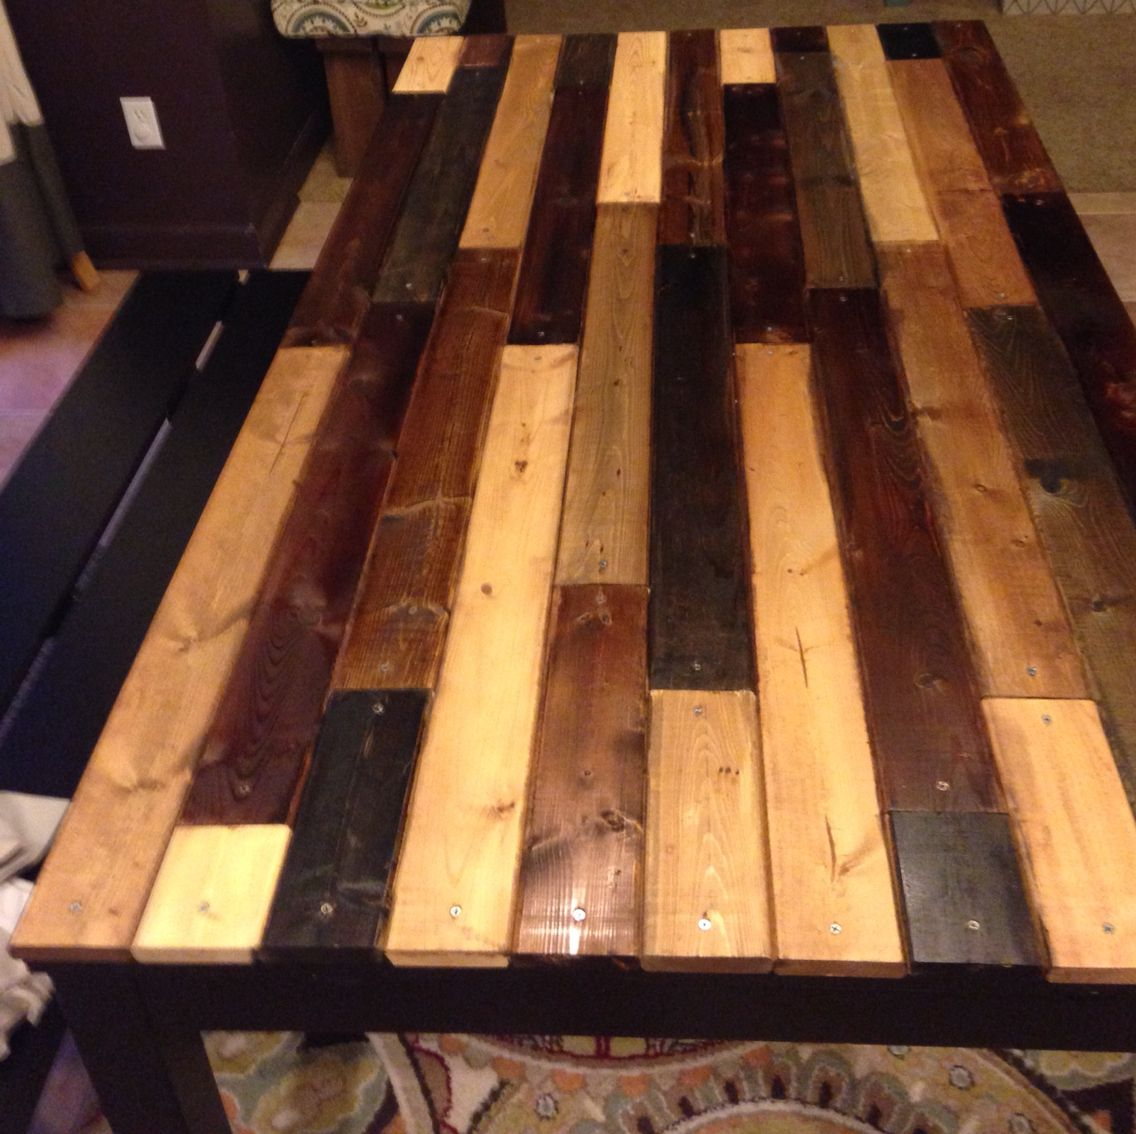 Table Made With Repurposed Ikea Bed Slats Ikea Bed Slats Bed Slats Upcycle Upcycle Bed [ 1134 x 1136 Pixel ]